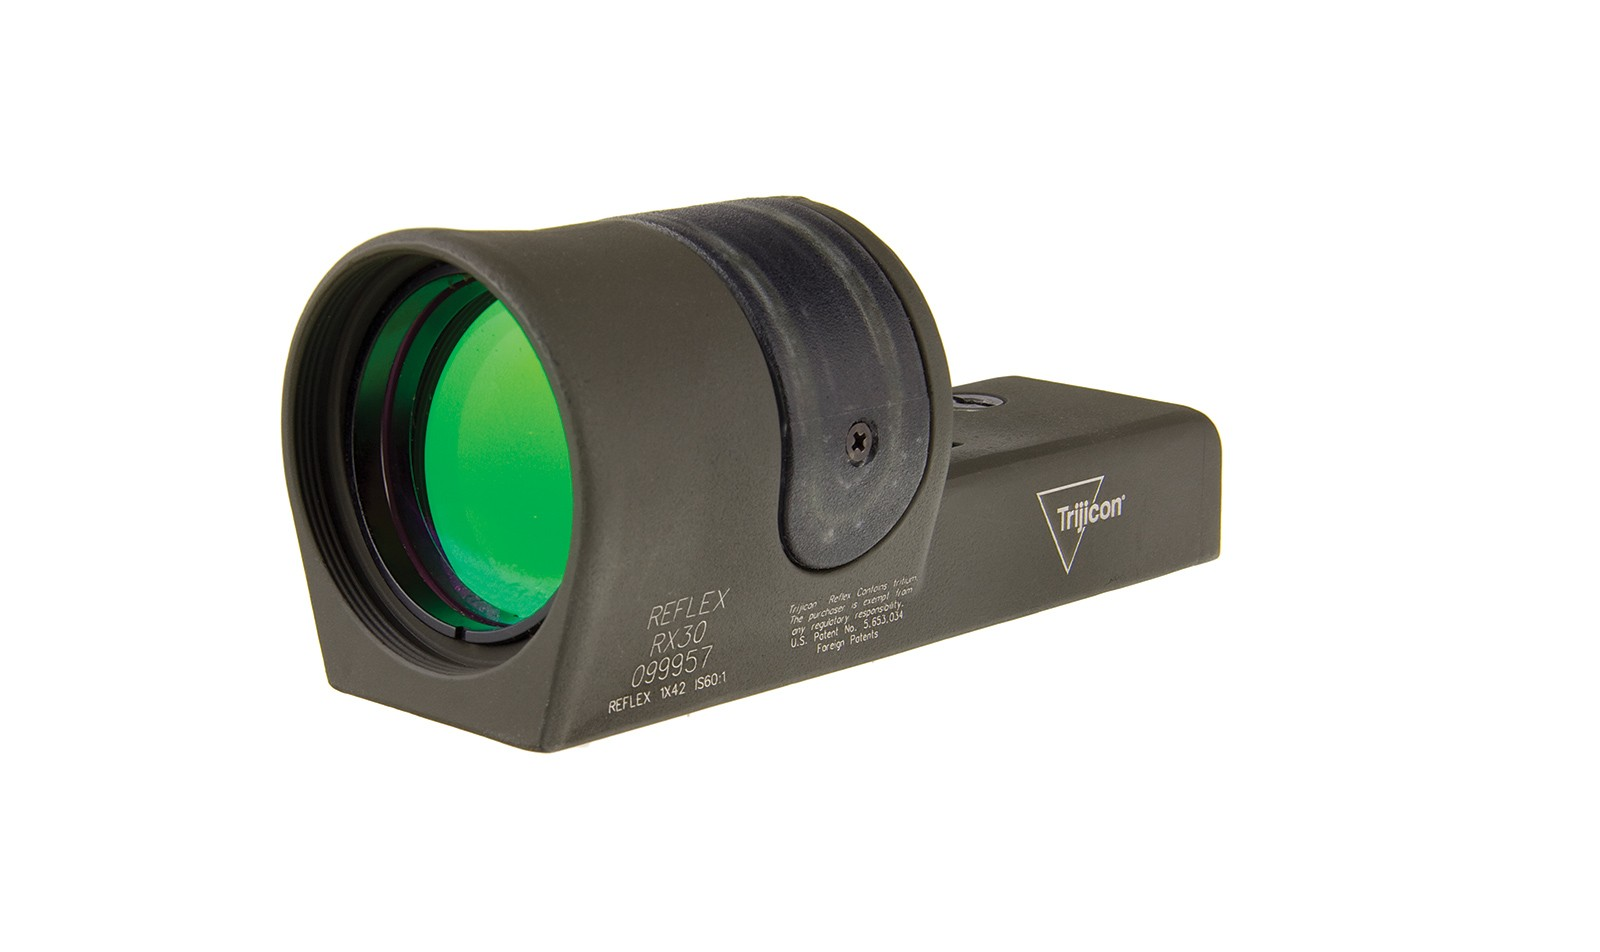 Trijicon® Reflex 1x42 Dual Illuminated Sight  - OD Green